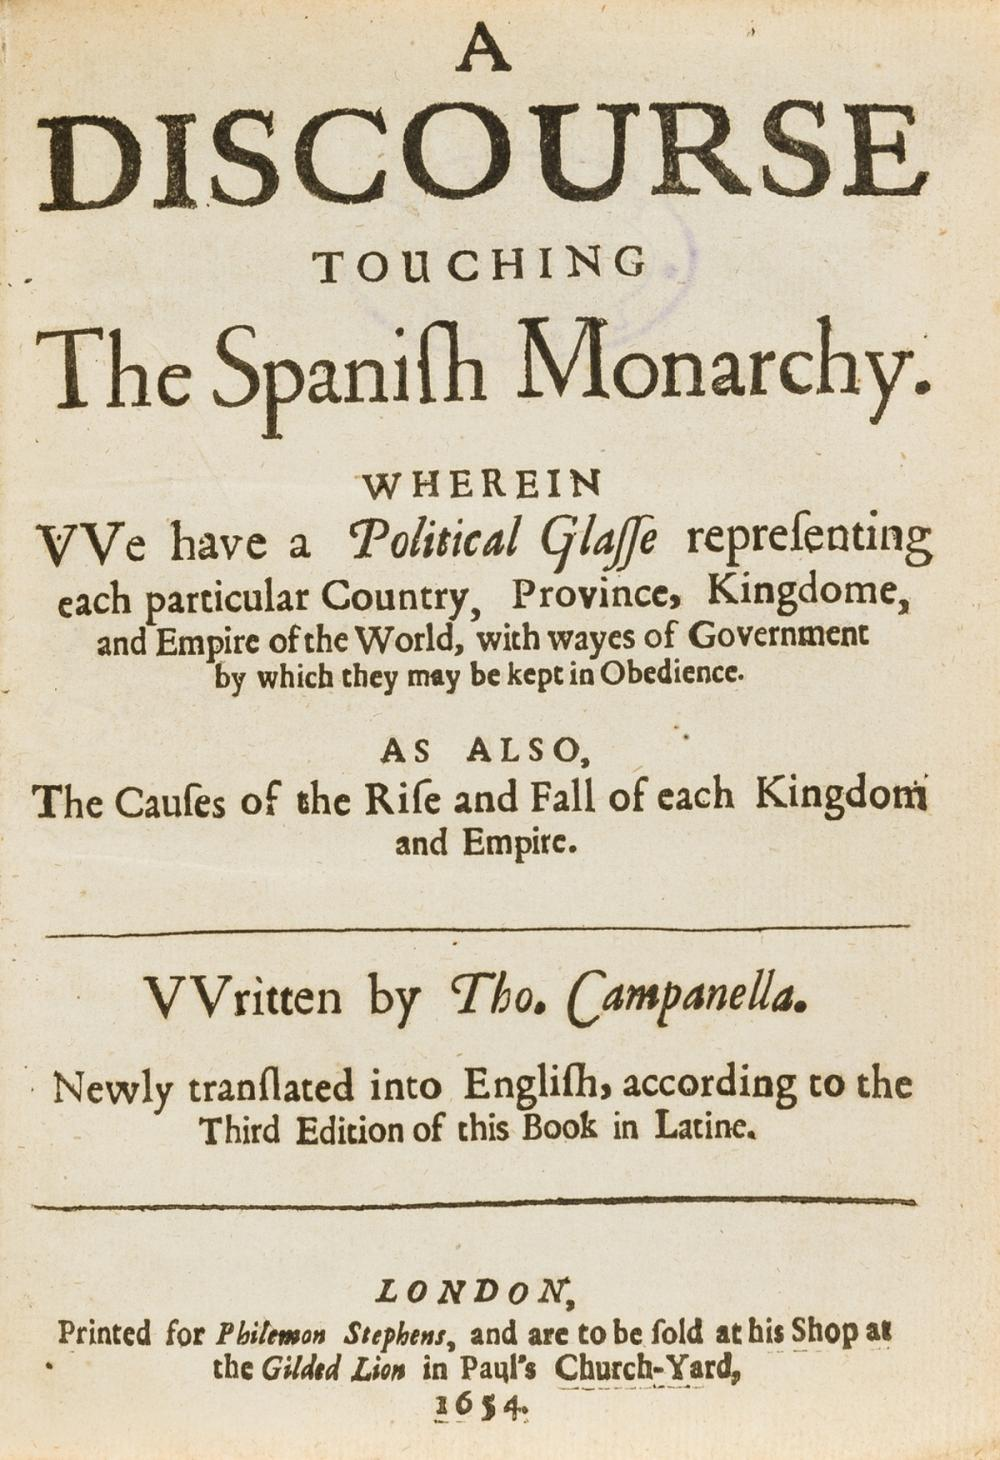 Spanish empire.- Campanella (Tommaso) A Discourse Touching the Spanish Monarchy, first edition in English, 1654.